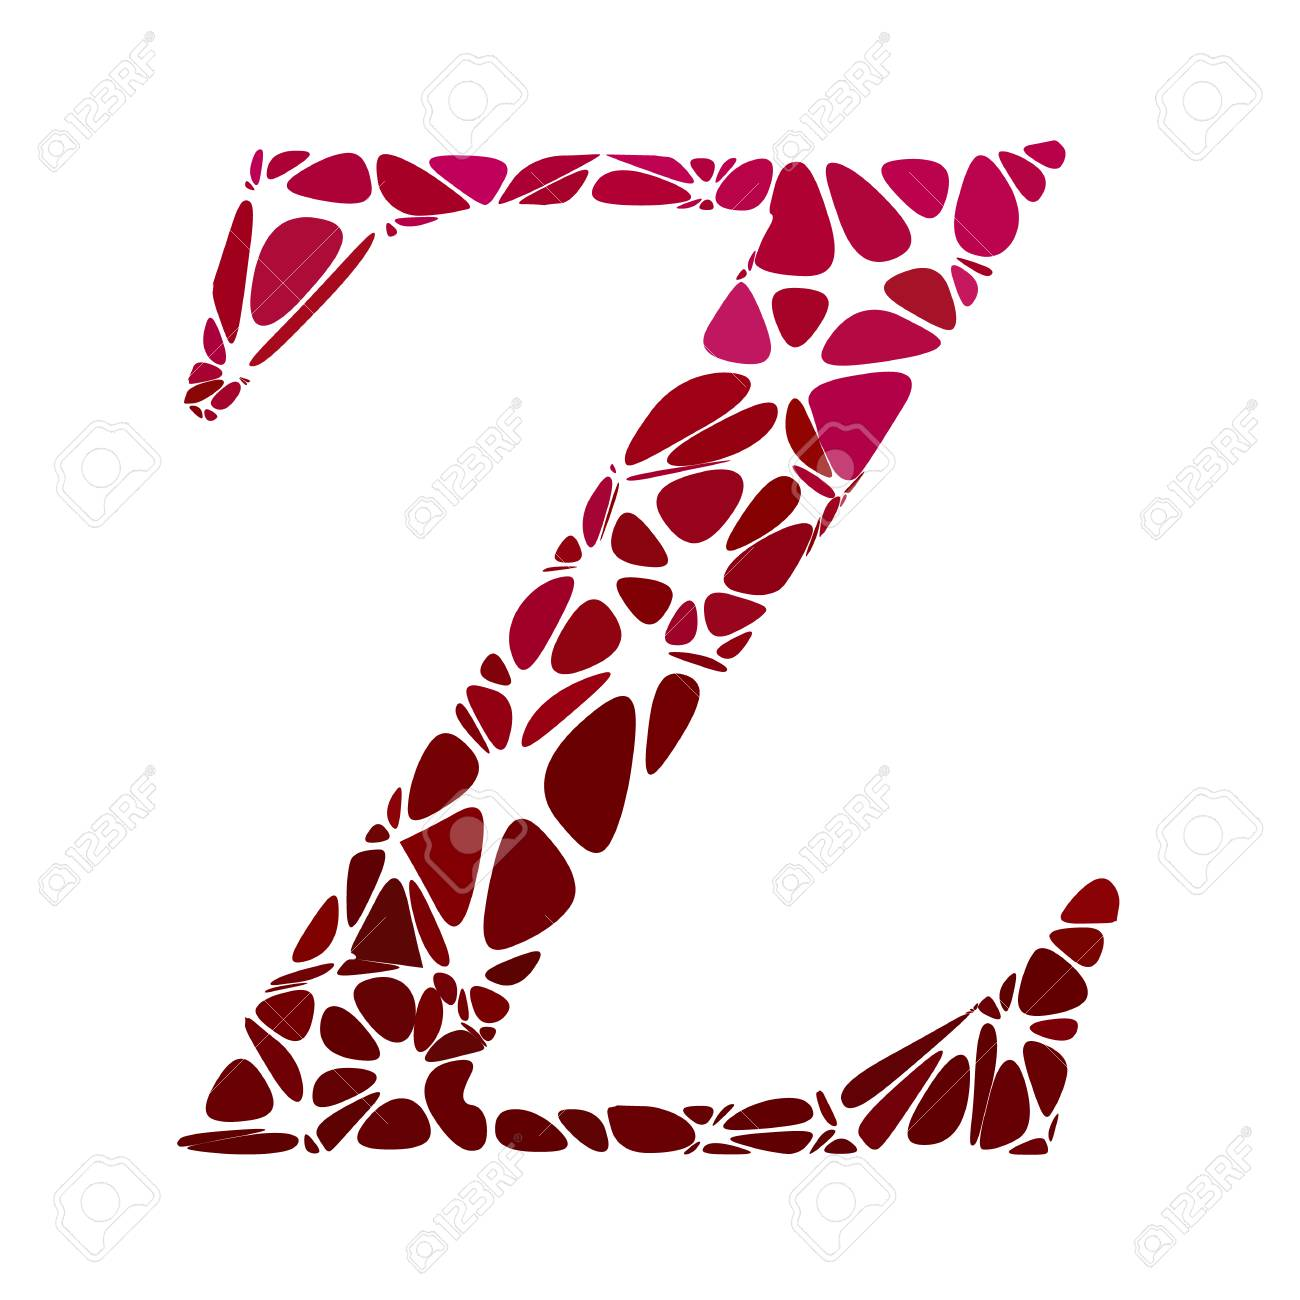 Red Alphabet z Cell Style, Creative Design Templates